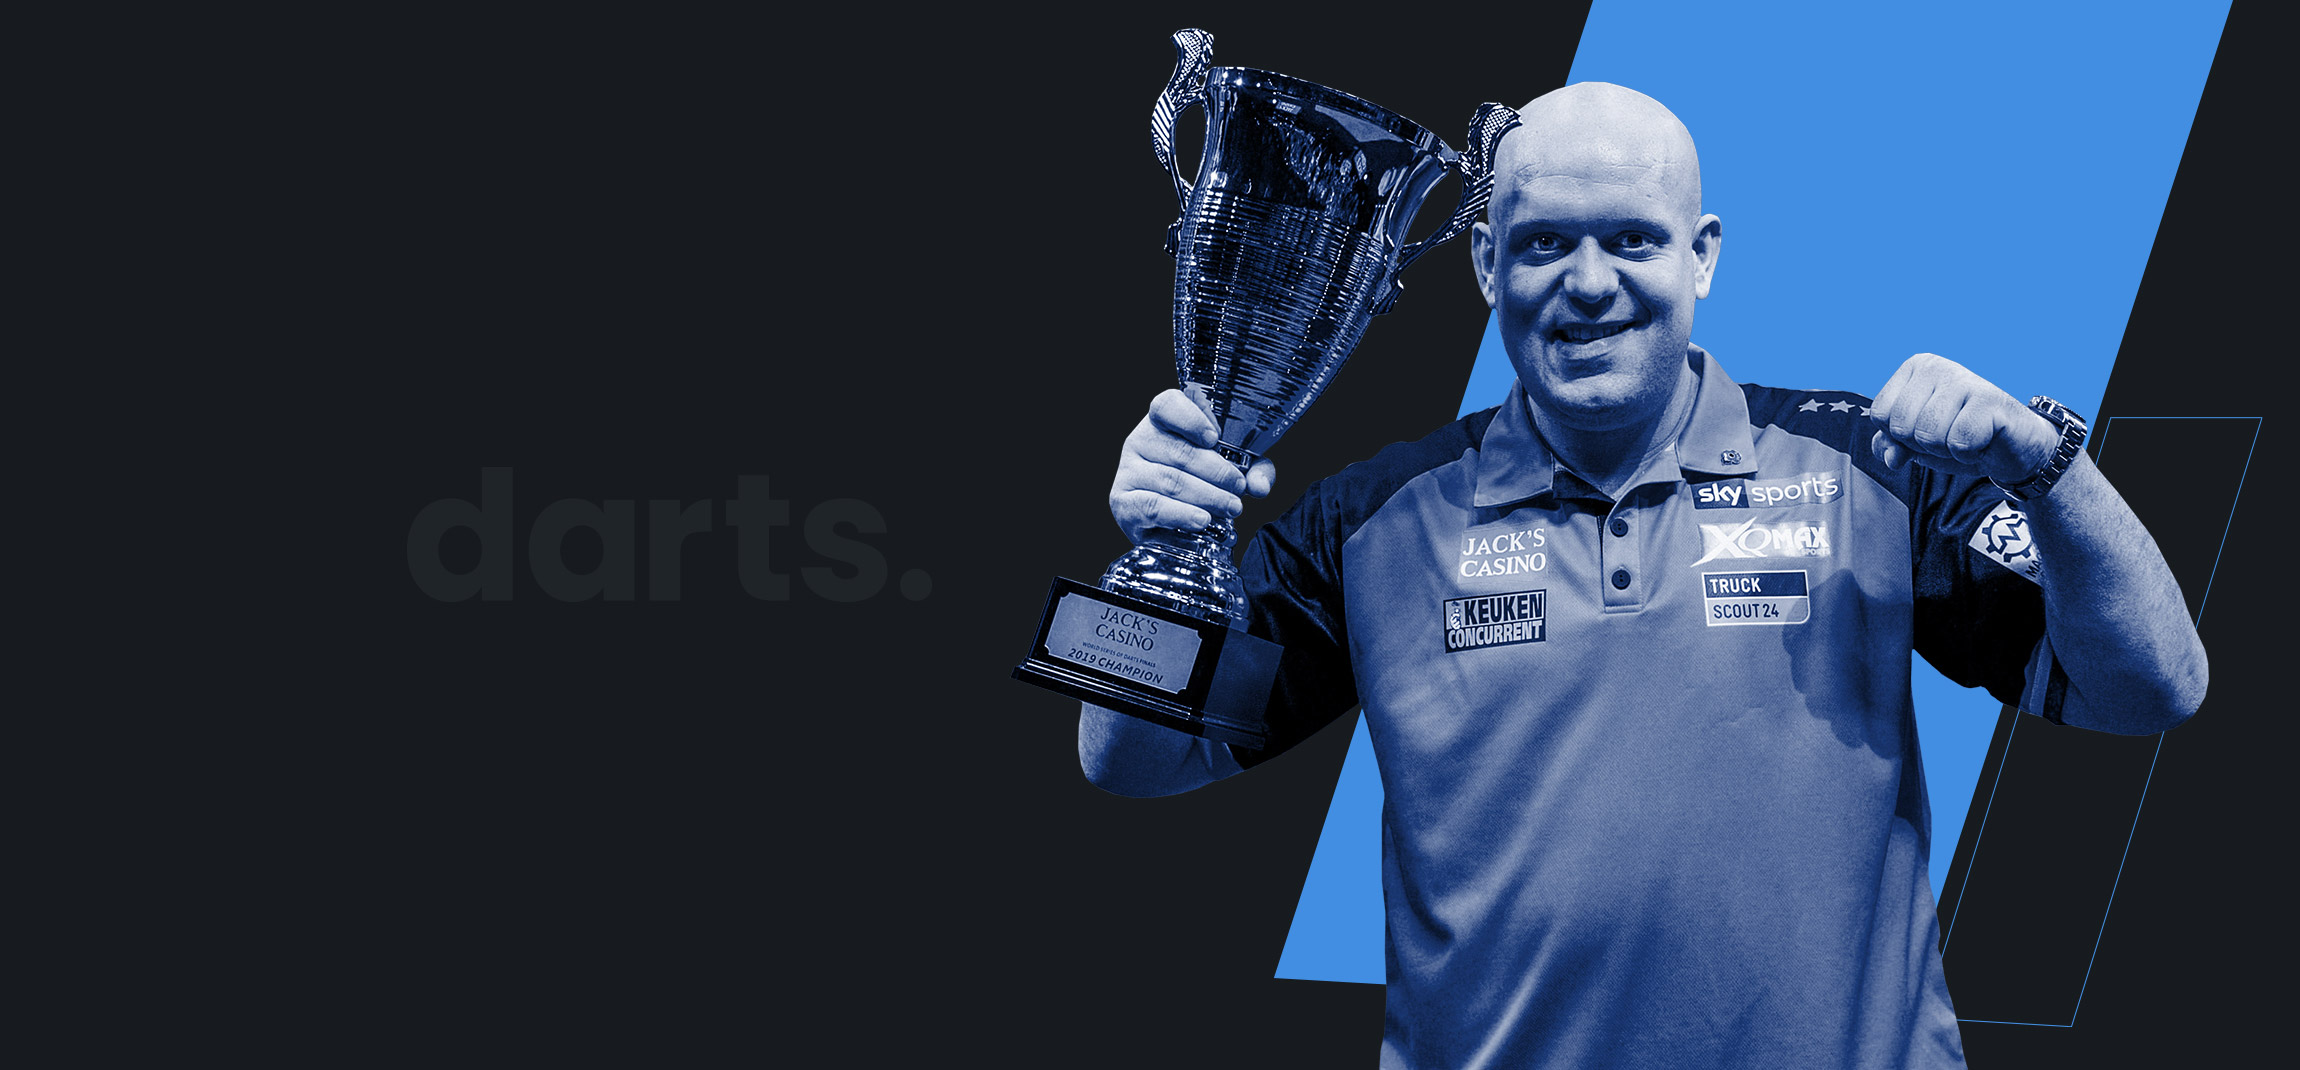 We are Matchroom Sport - We are Champions League of Darts